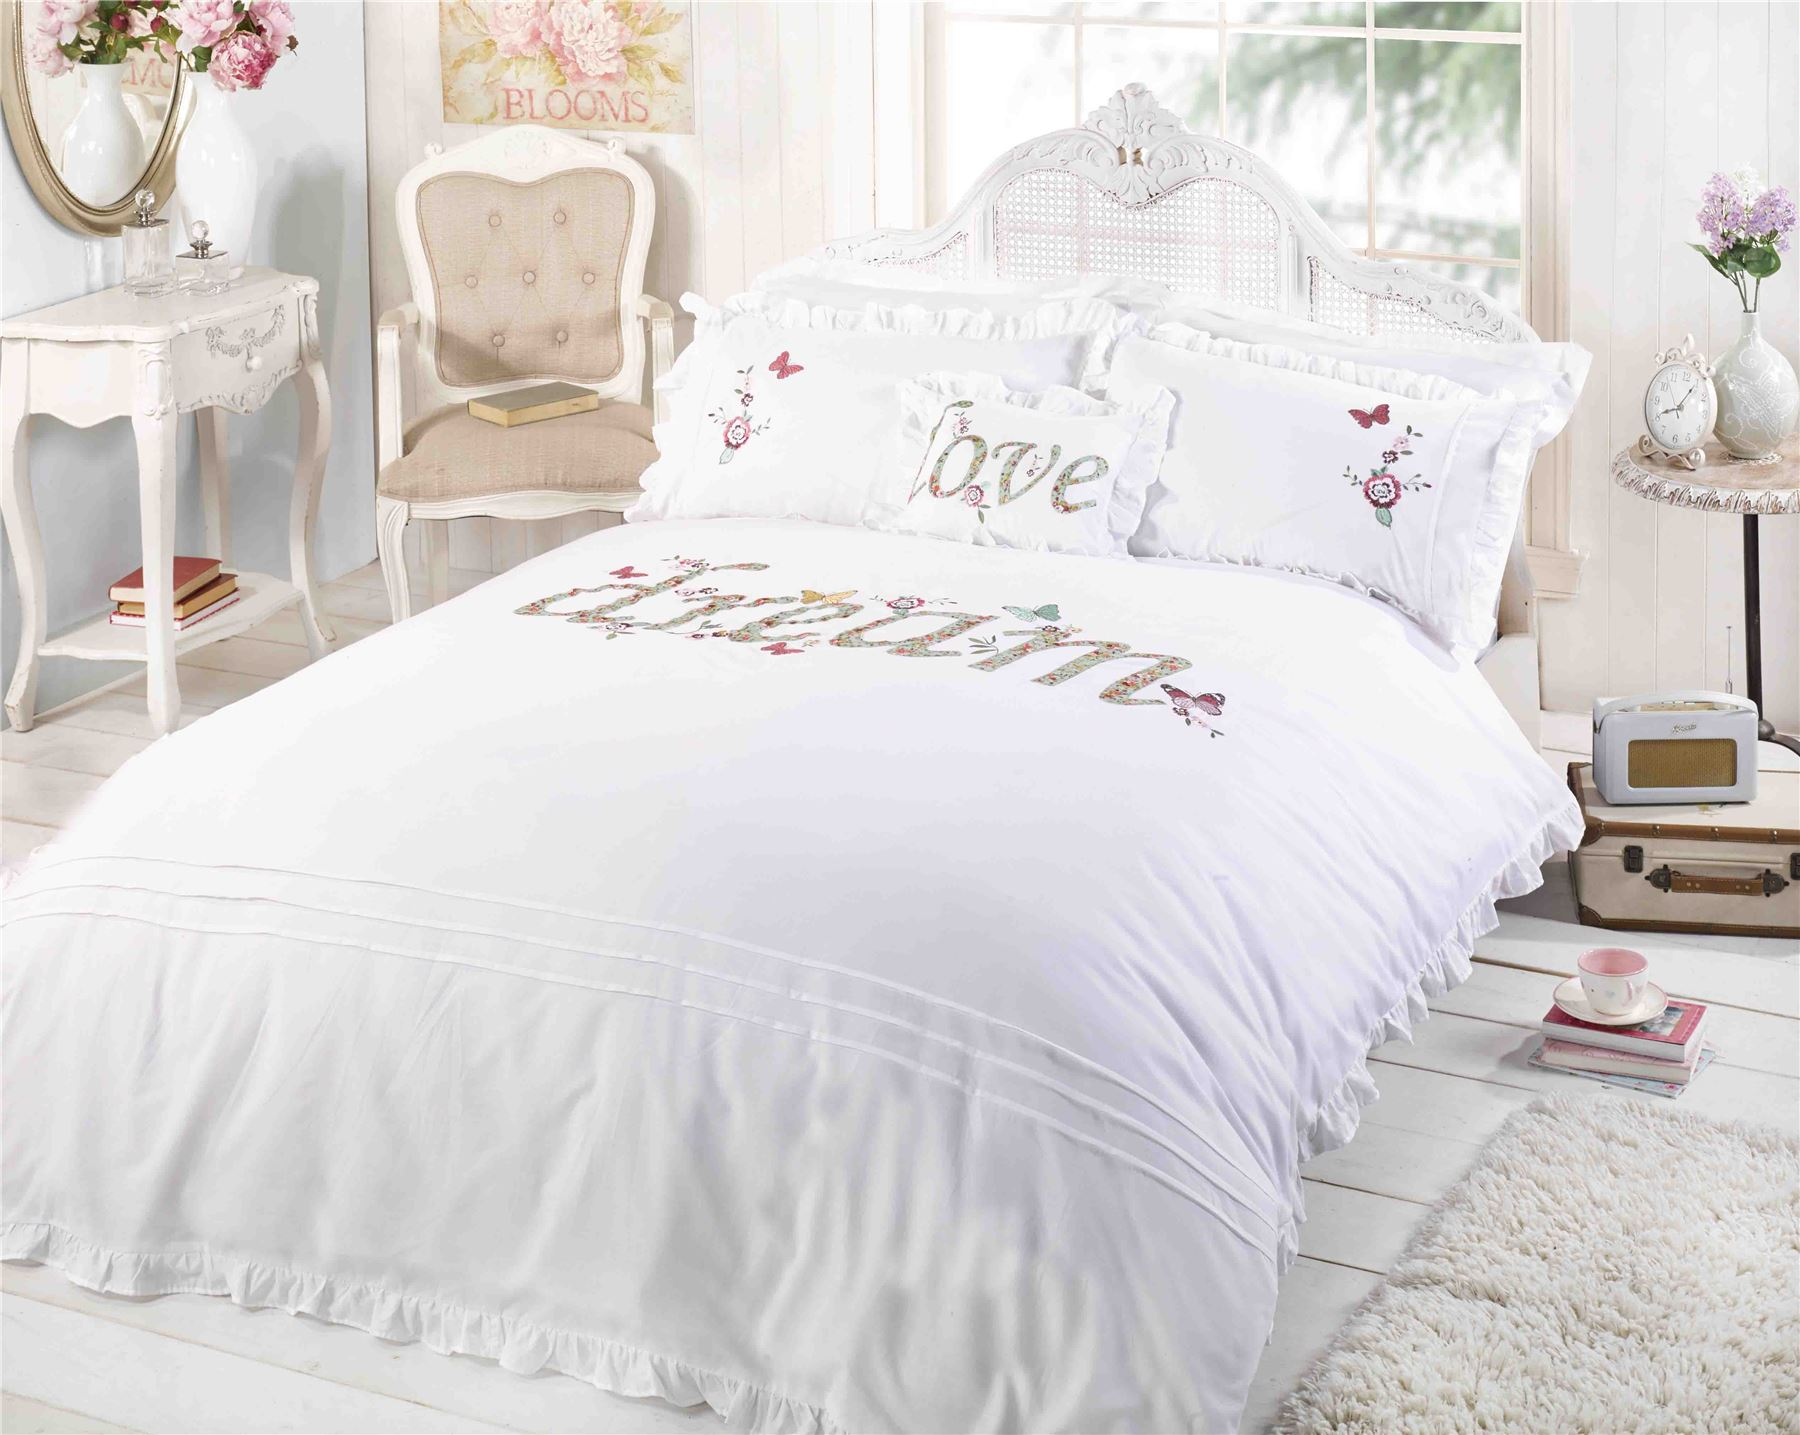 rapport luxury dream white pink green embroidered duvet cover bedding bed ebay. Black Bedroom Furniture Sets. Home Design Ideas